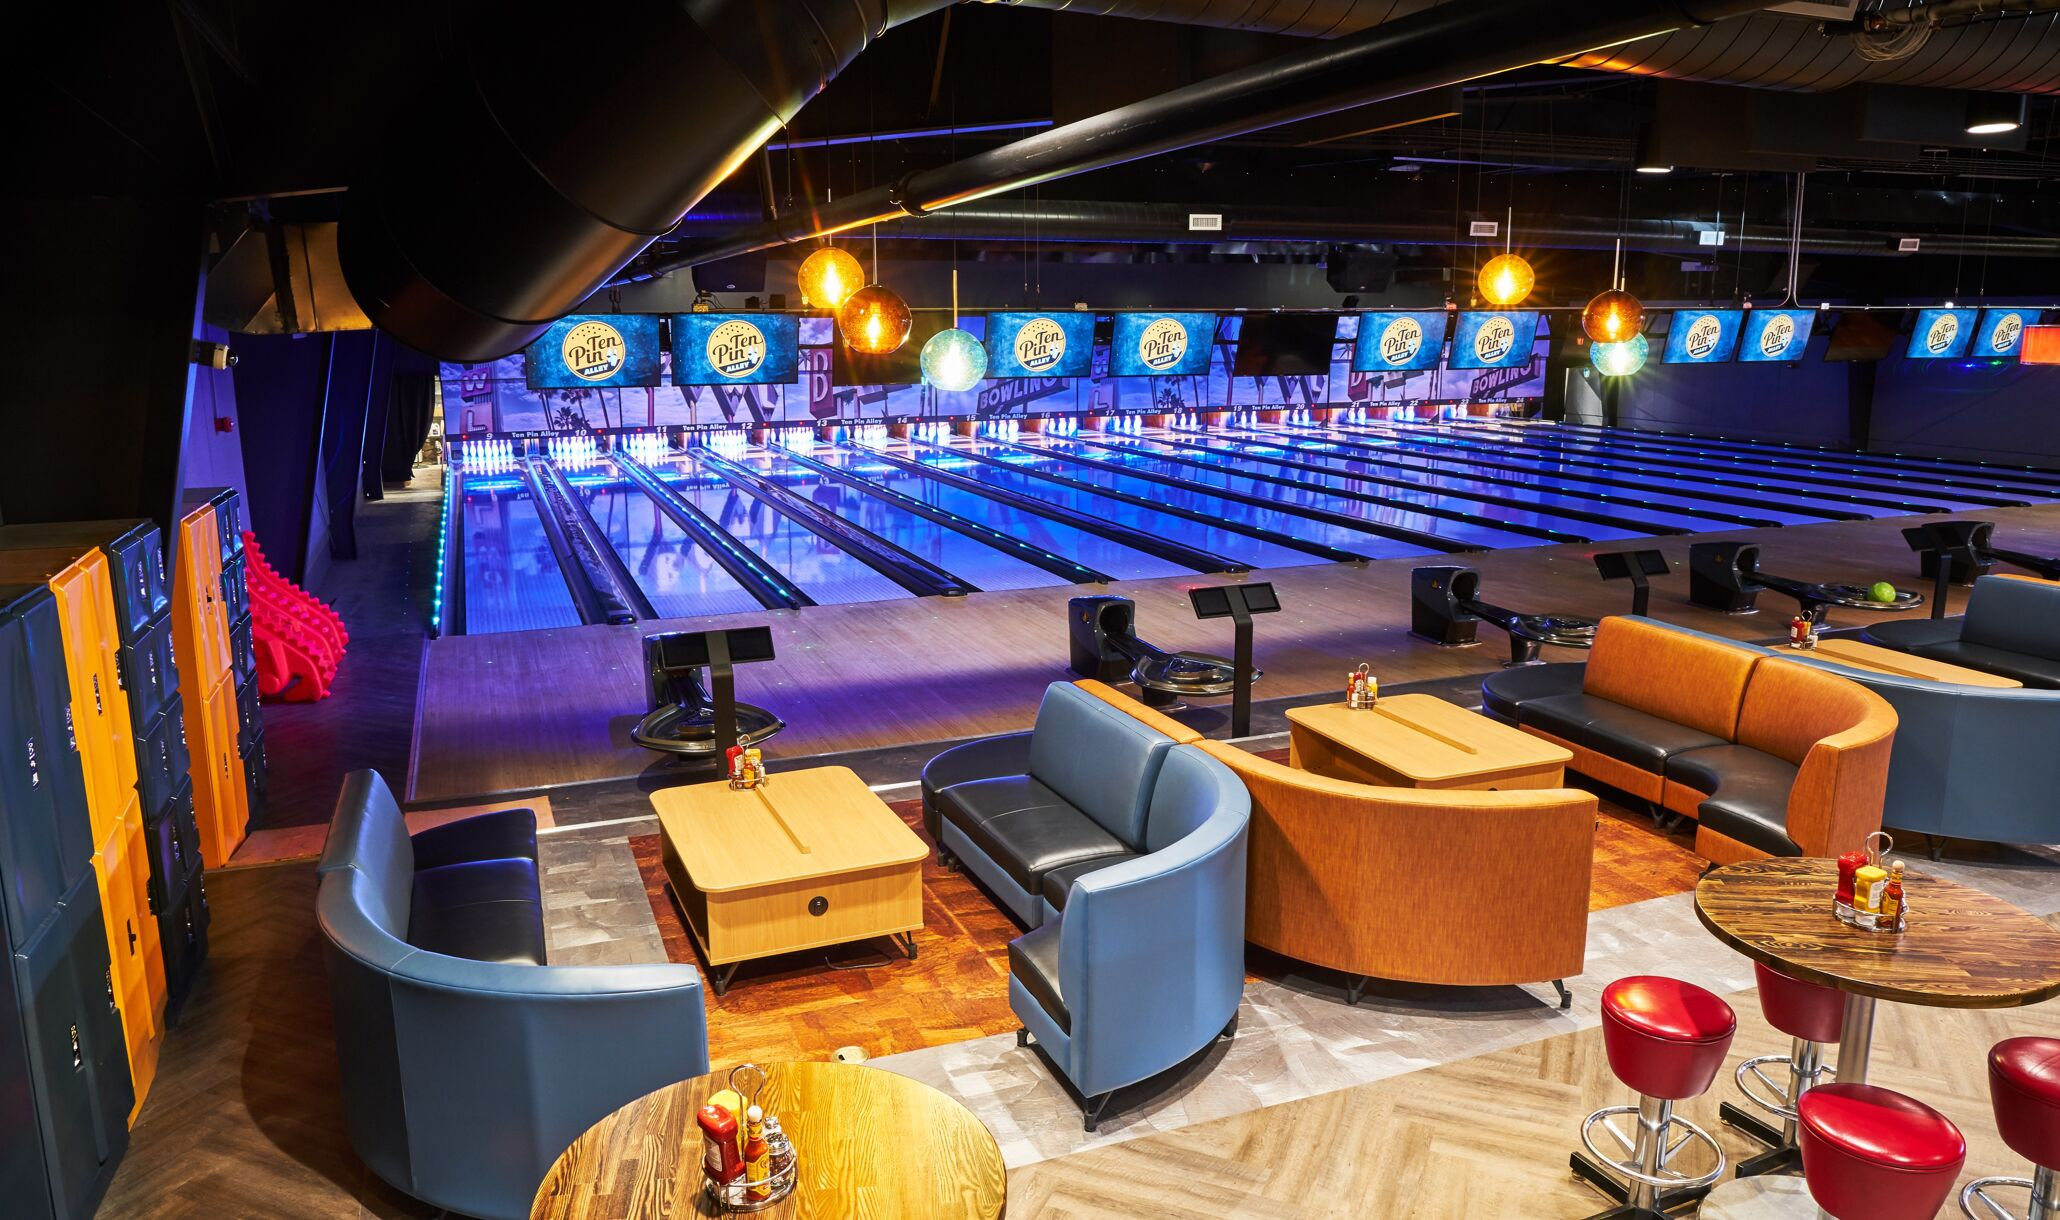 Ten Pin Alley Oh Main 20180227 1100-2